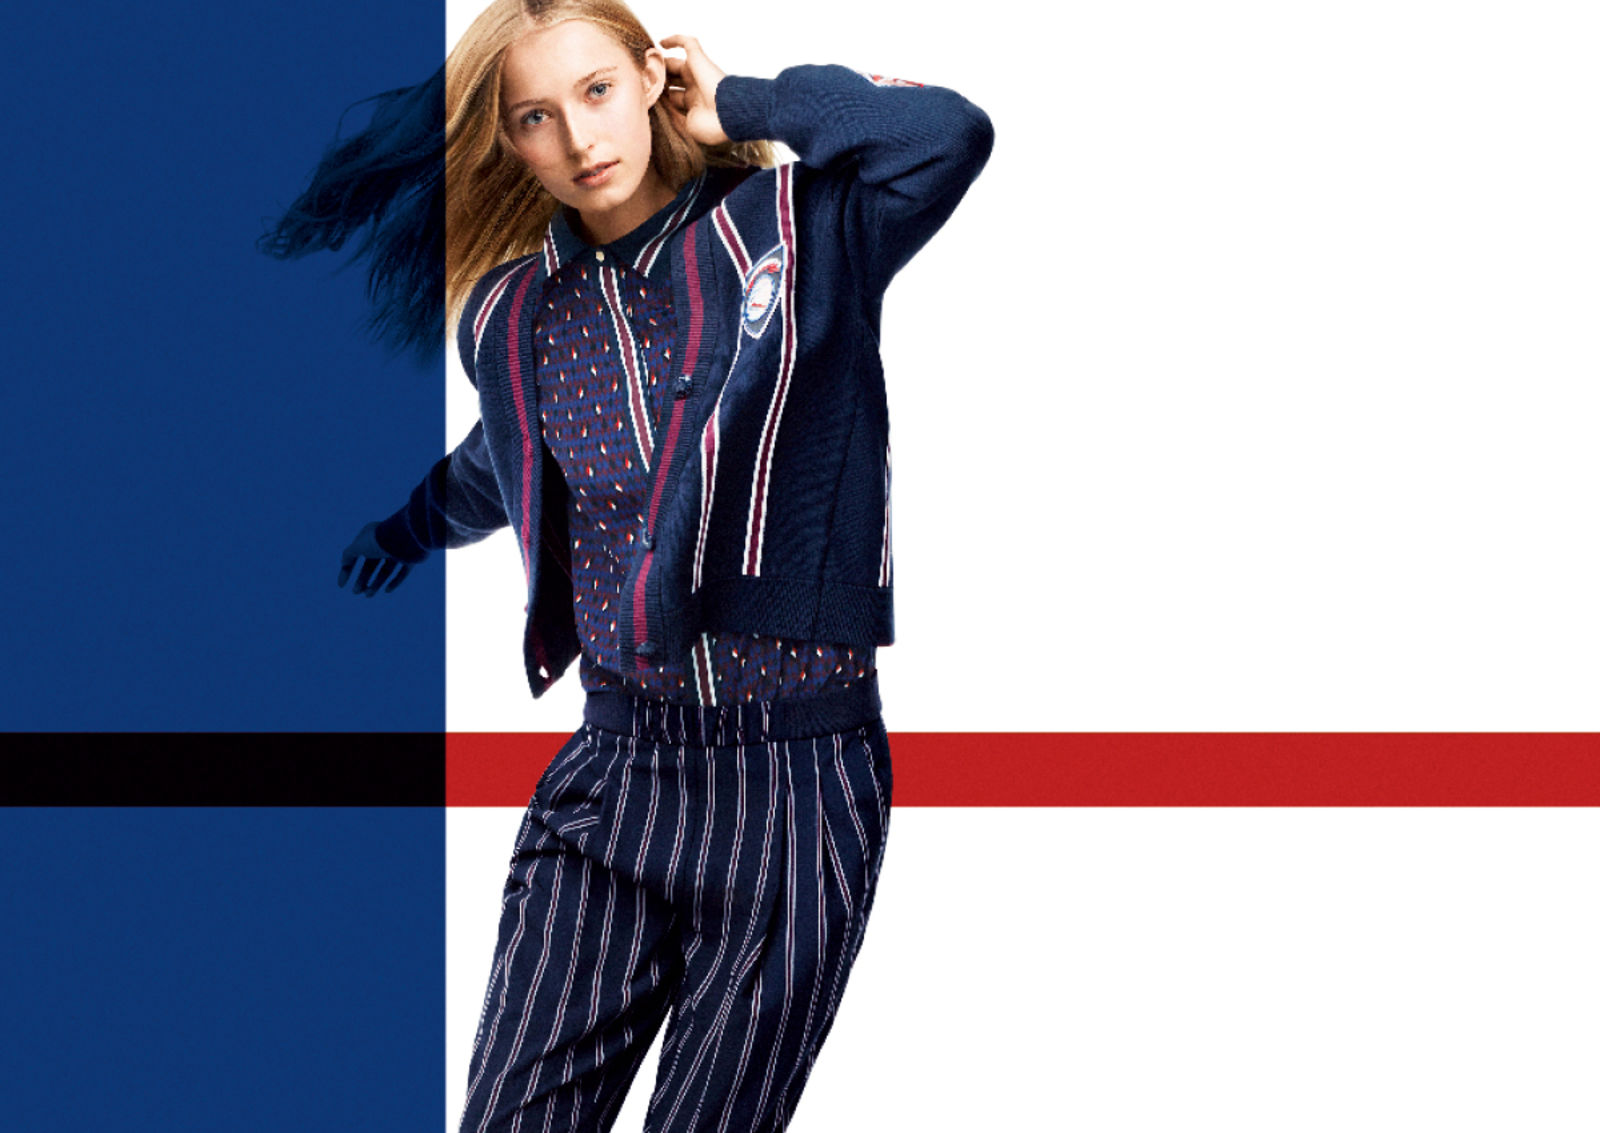 TOMMY HILFIGER (Afbeelding 2)